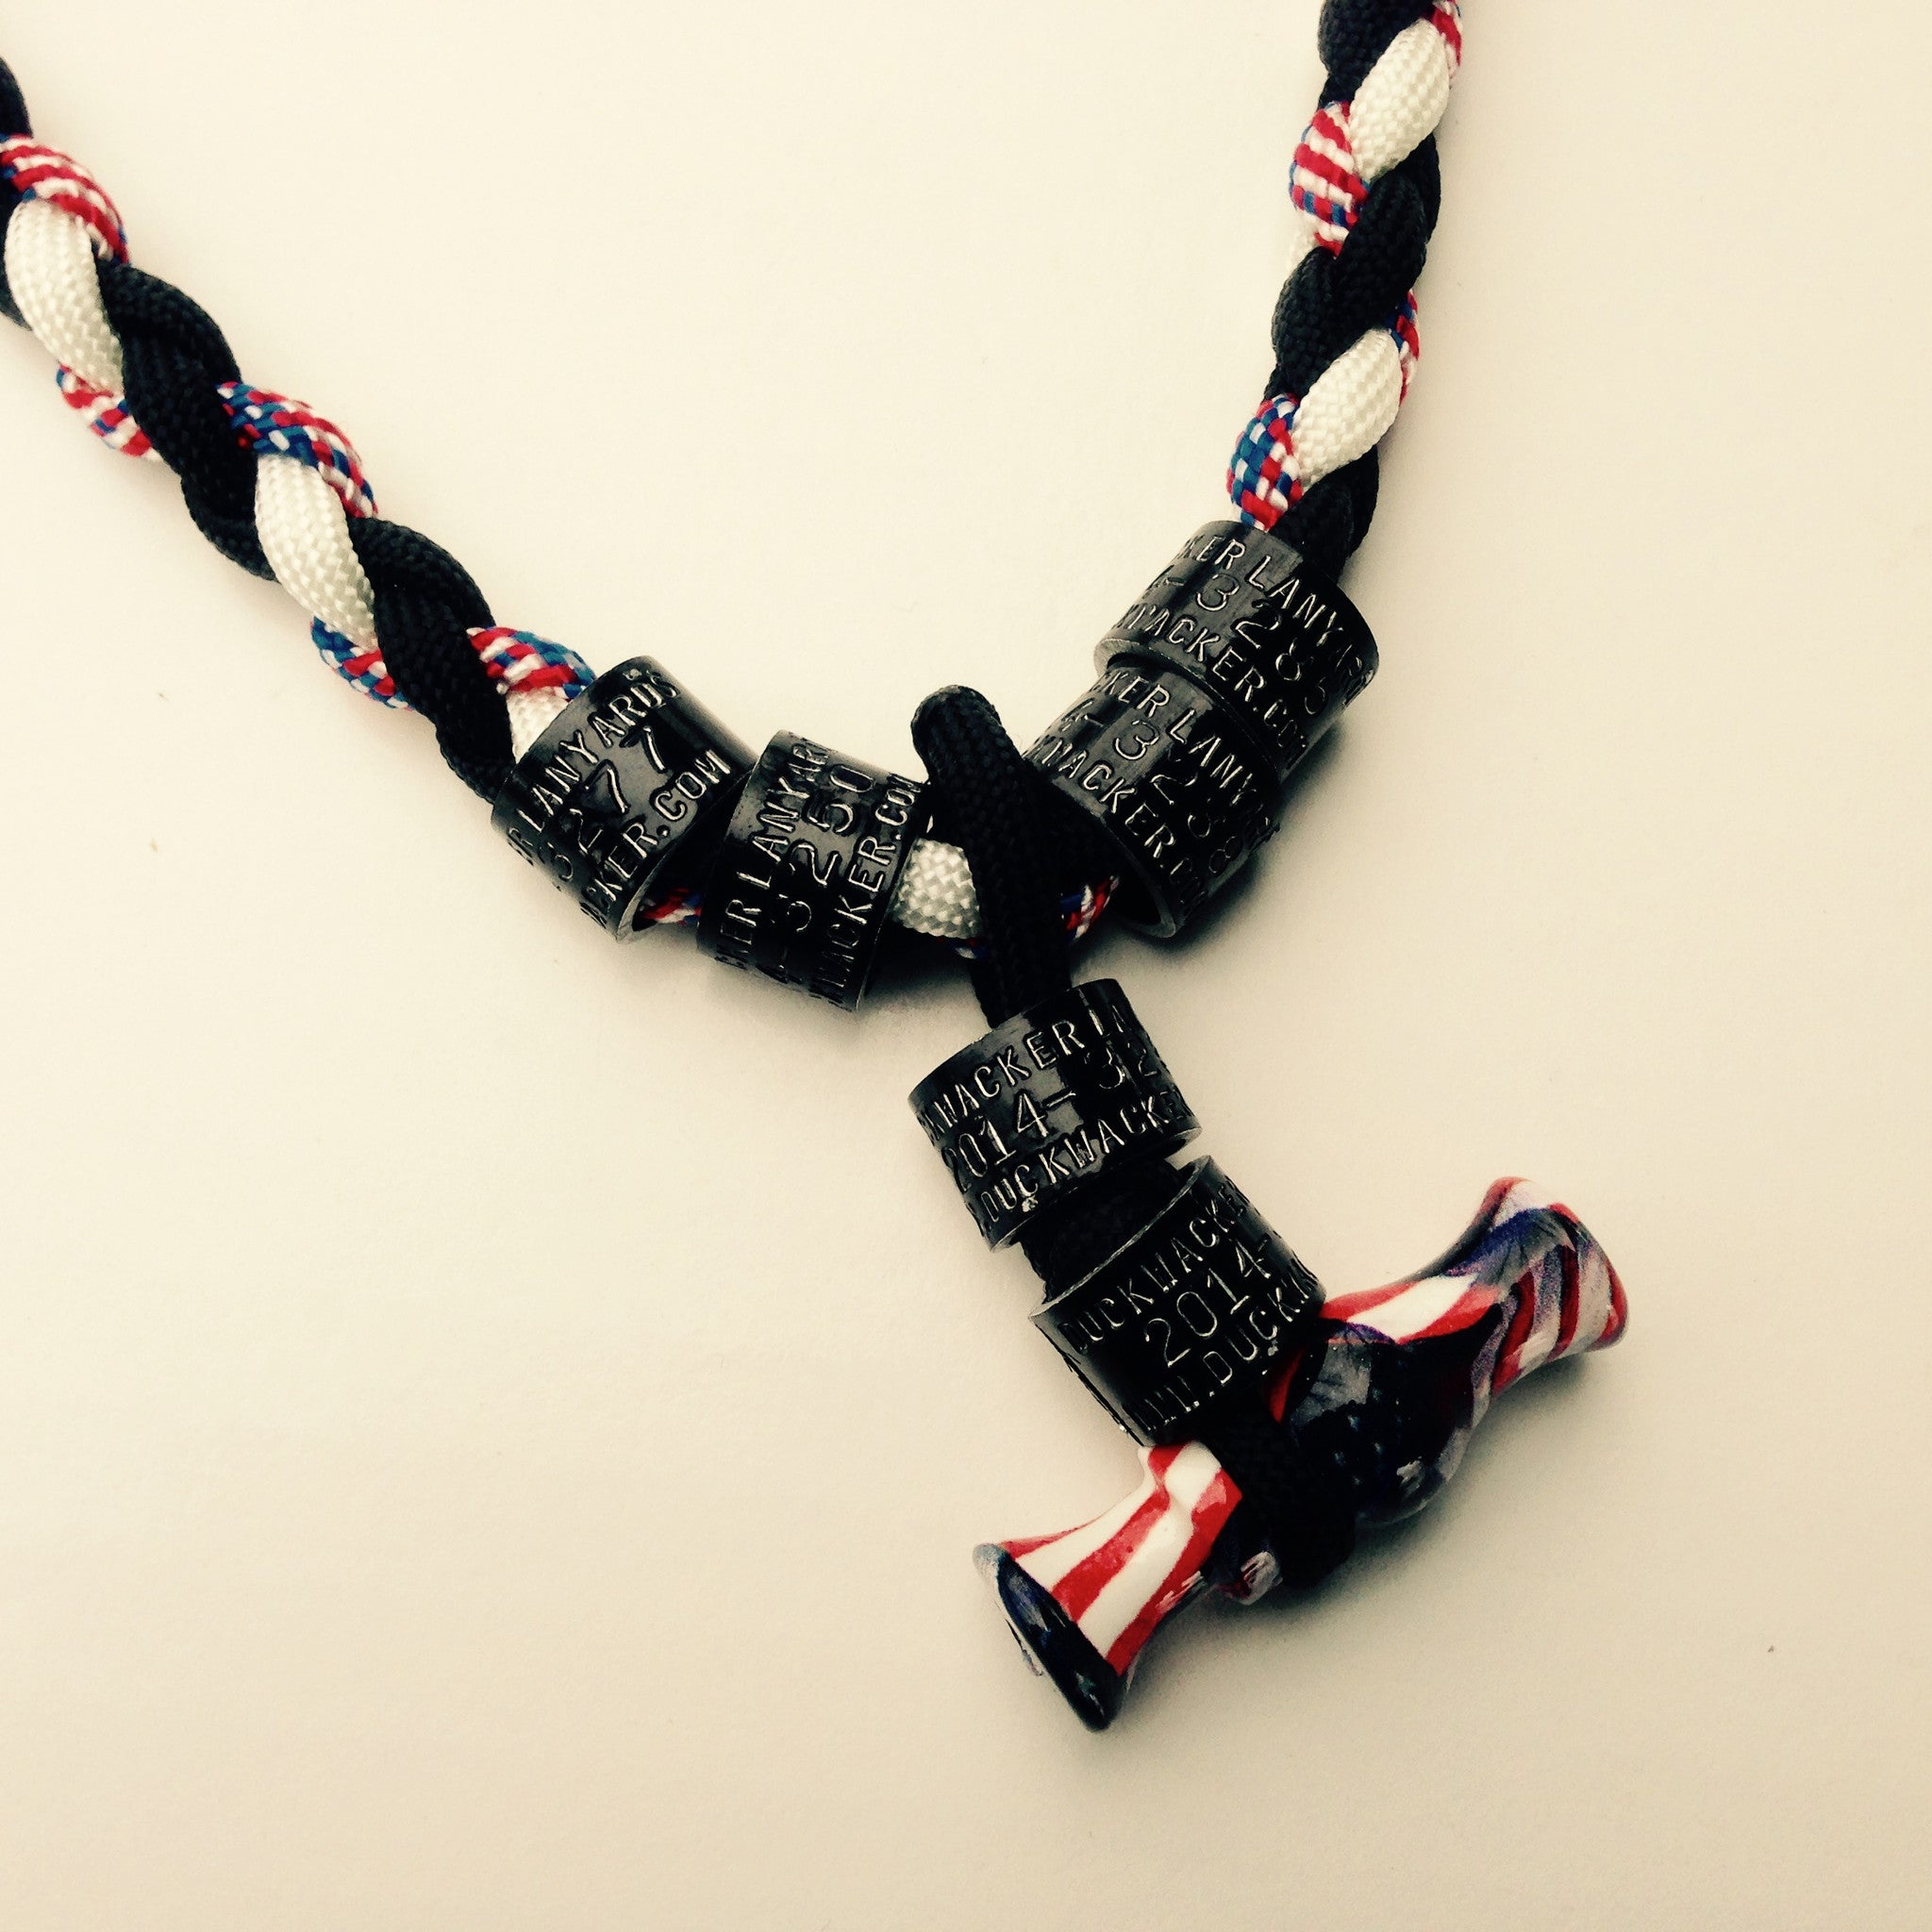 duckwacker mini duck call necklace evil black white and